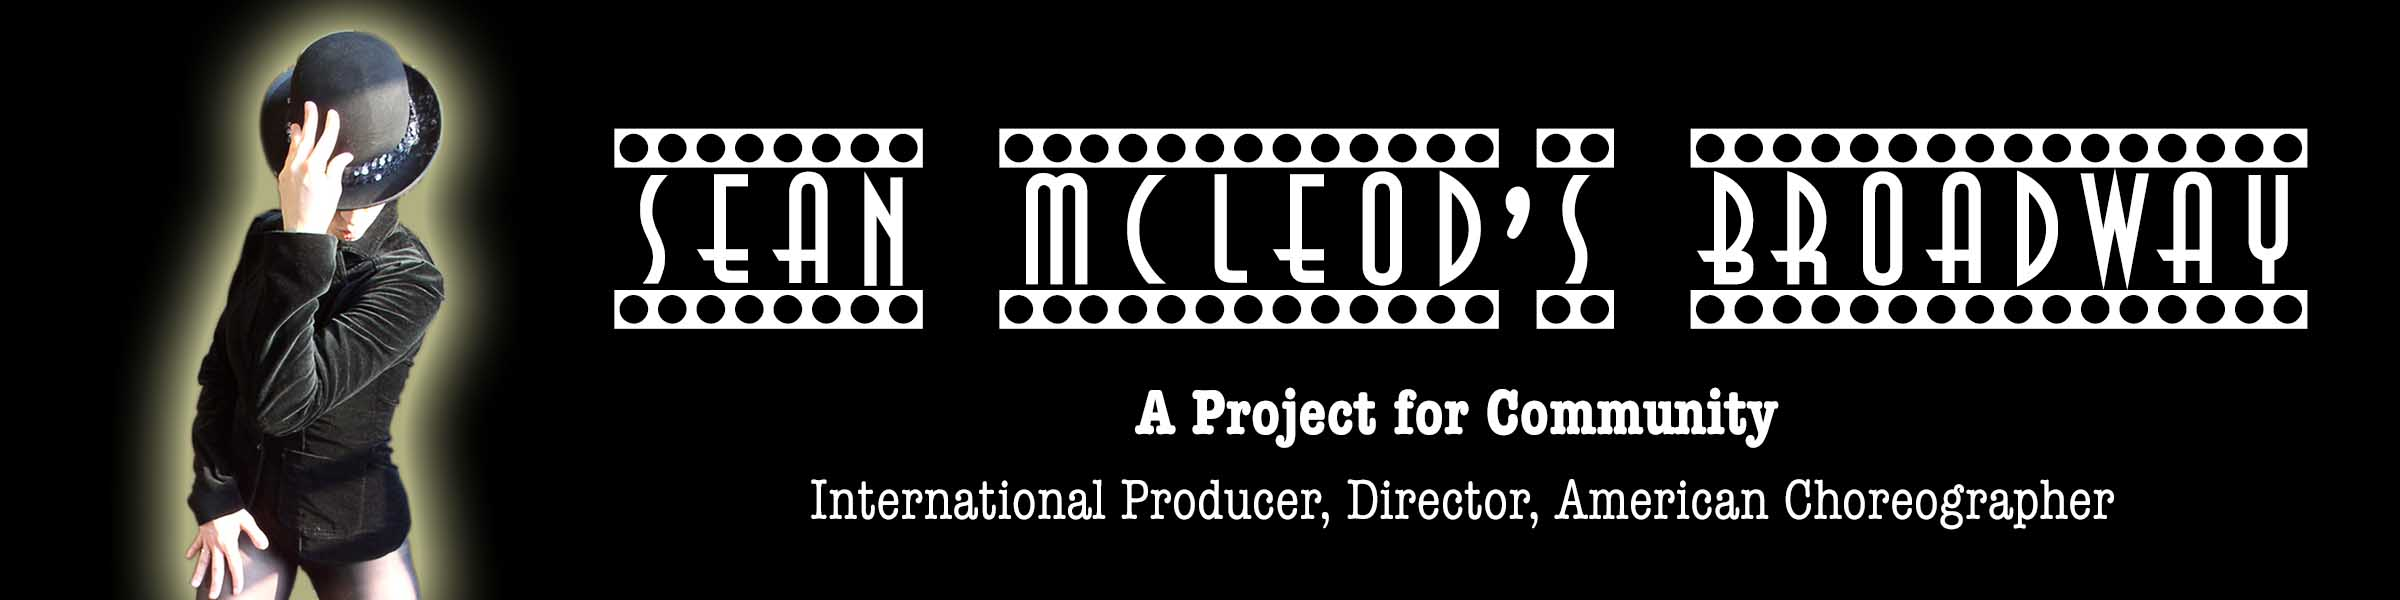 sean-mcleods-broadway-website-banner-web